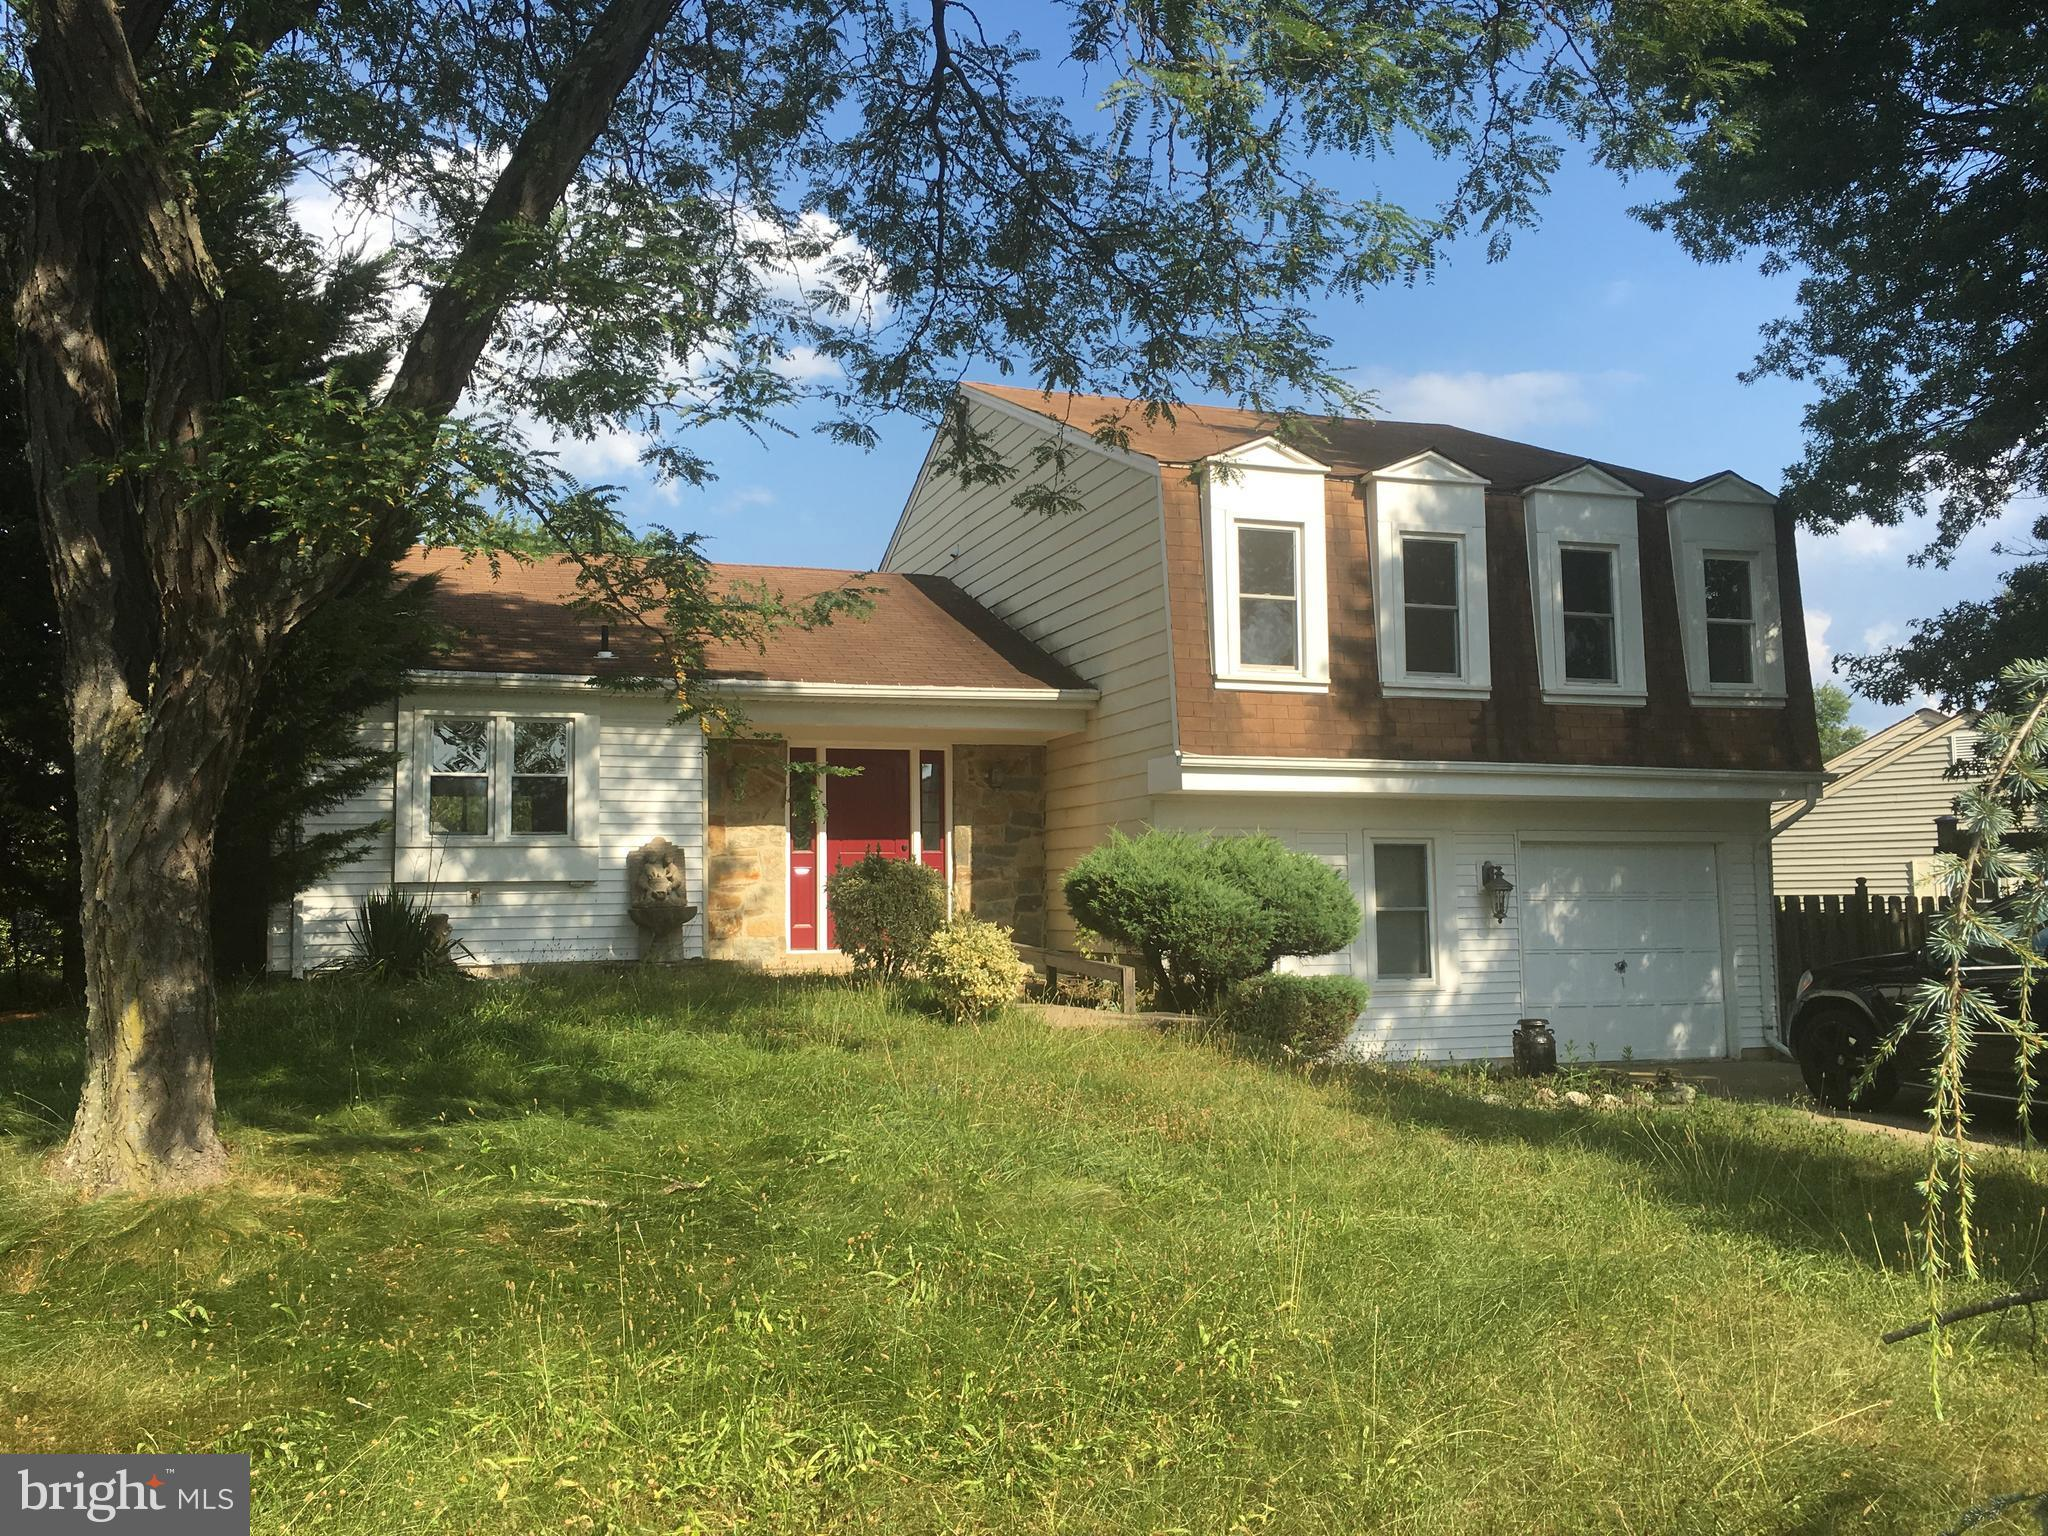 Show instructions: please call first showing contact. Seller prefers National Title Settlement Group. As-is condition. A must see!